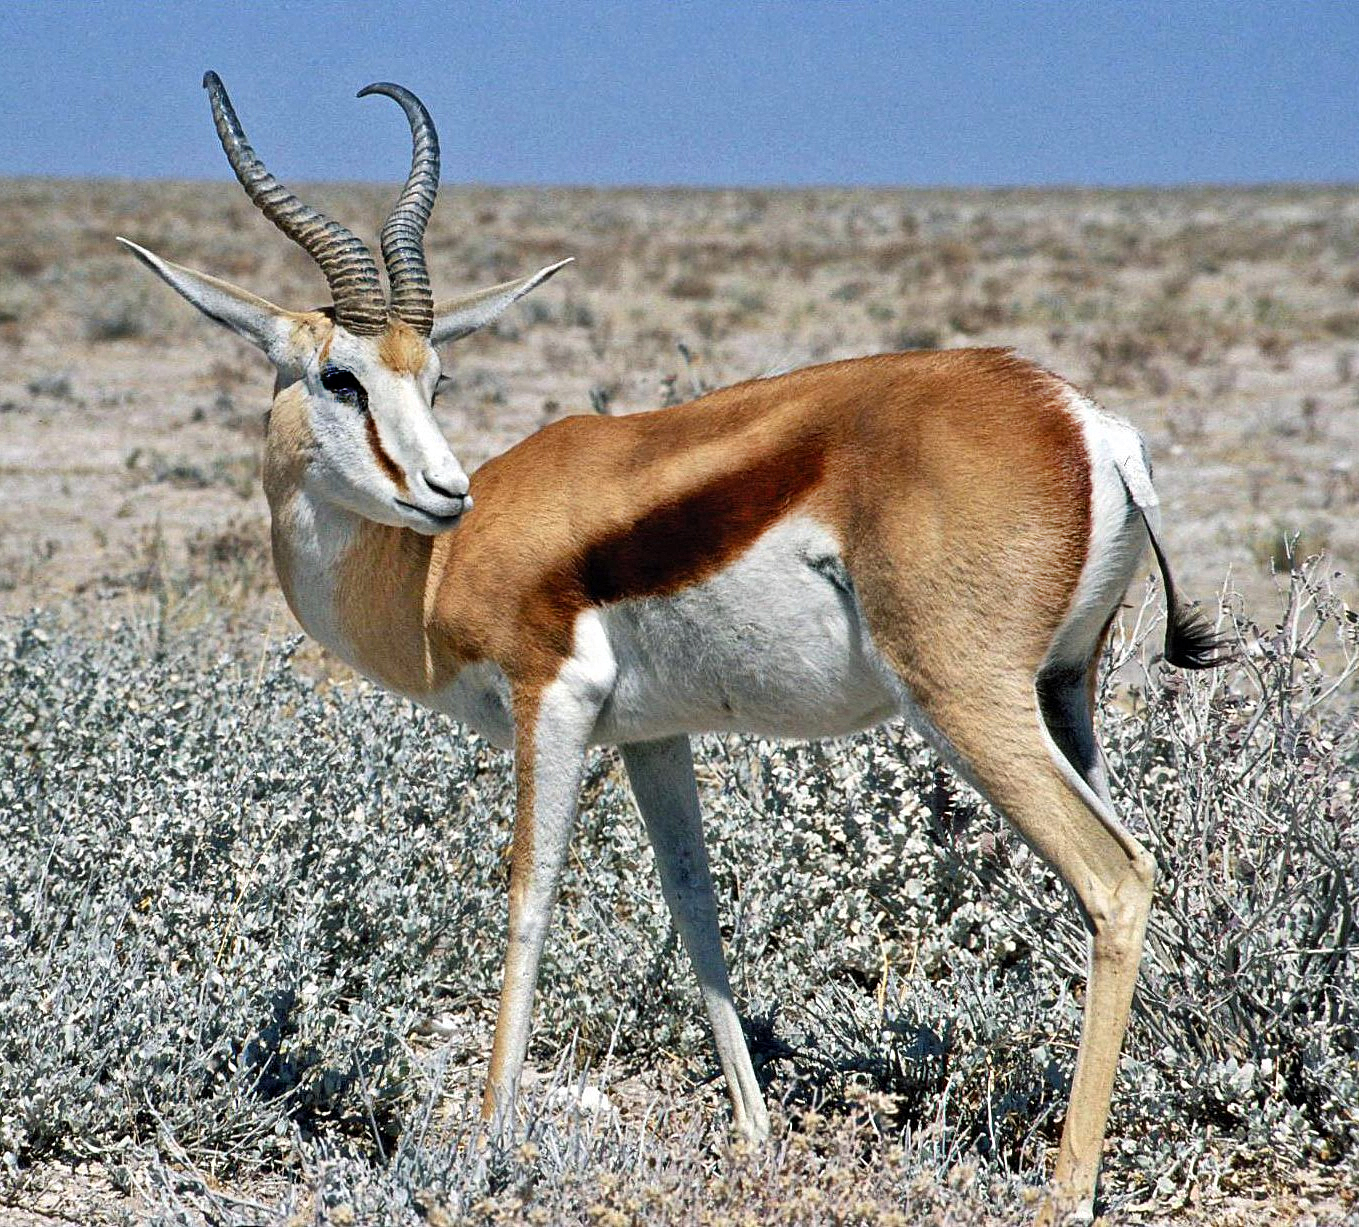 https://i1.wp.com/upload.wikimedia.org/wikipedia/commons/5/56/Springbok_Namibia.jpg